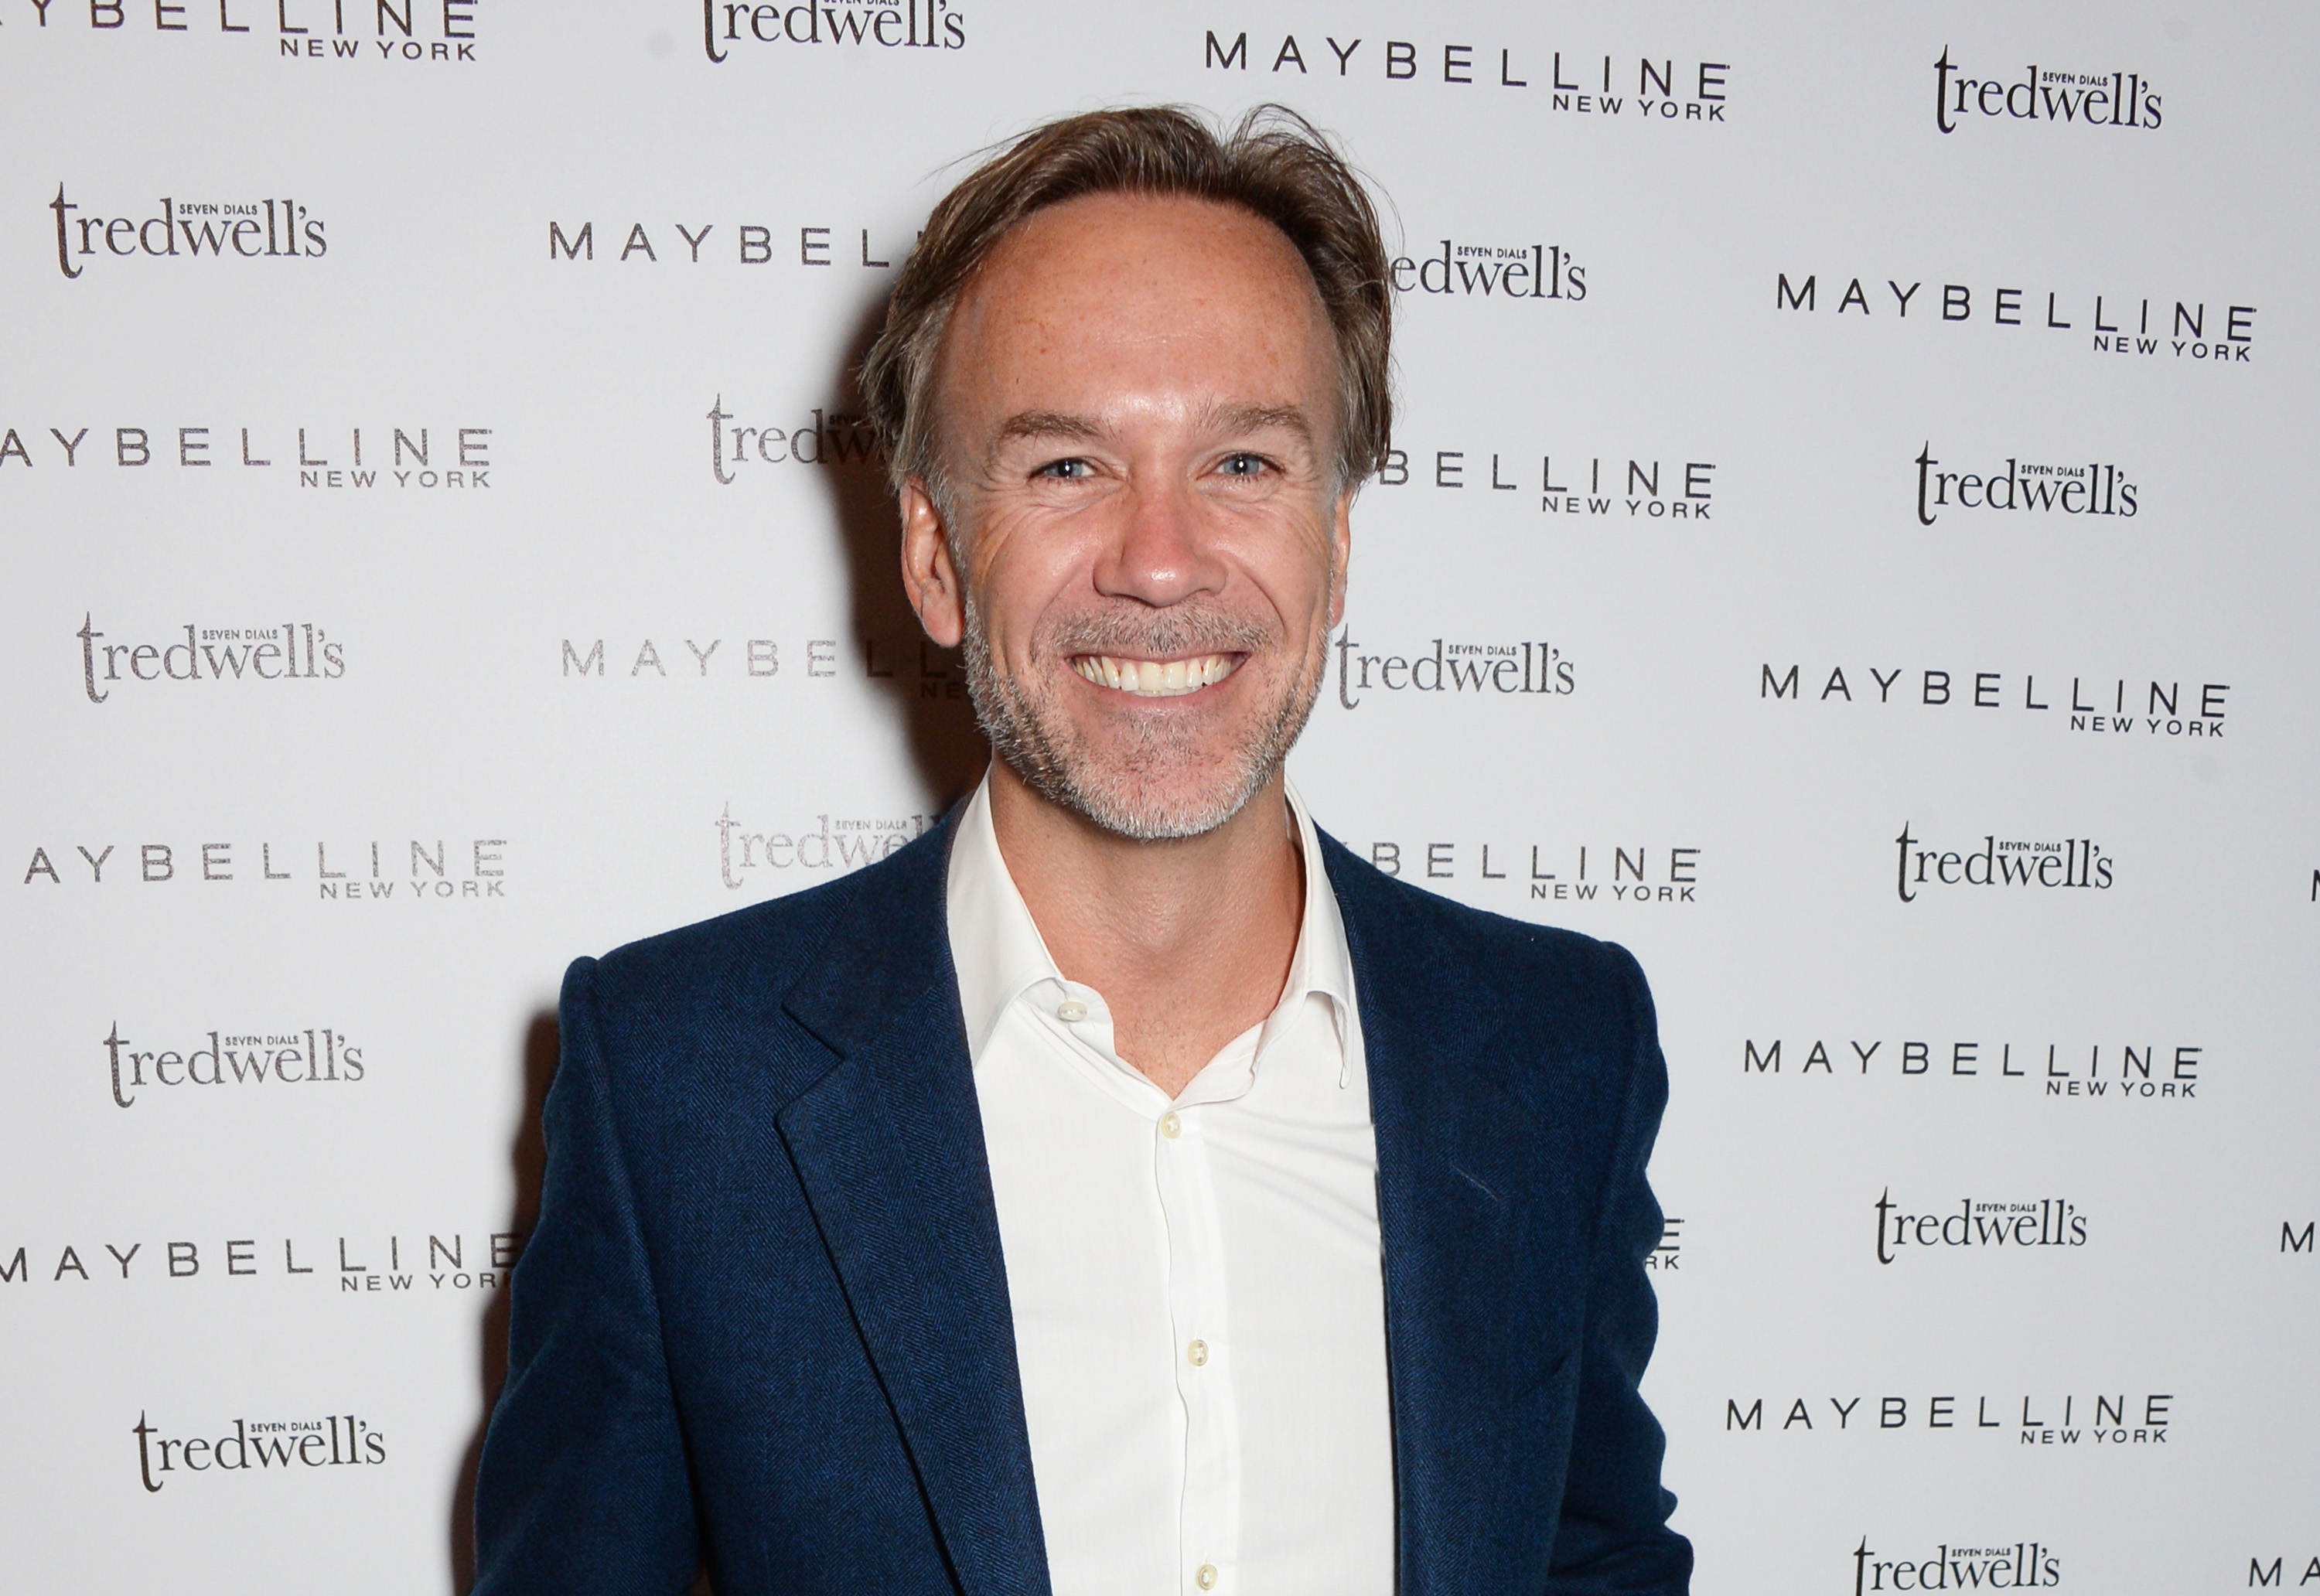 Marcus Wareing makes a pretty bad friend after insulting Gregg Wallace (Picture: David M. Benett/Getty Images for Maybelline New York)